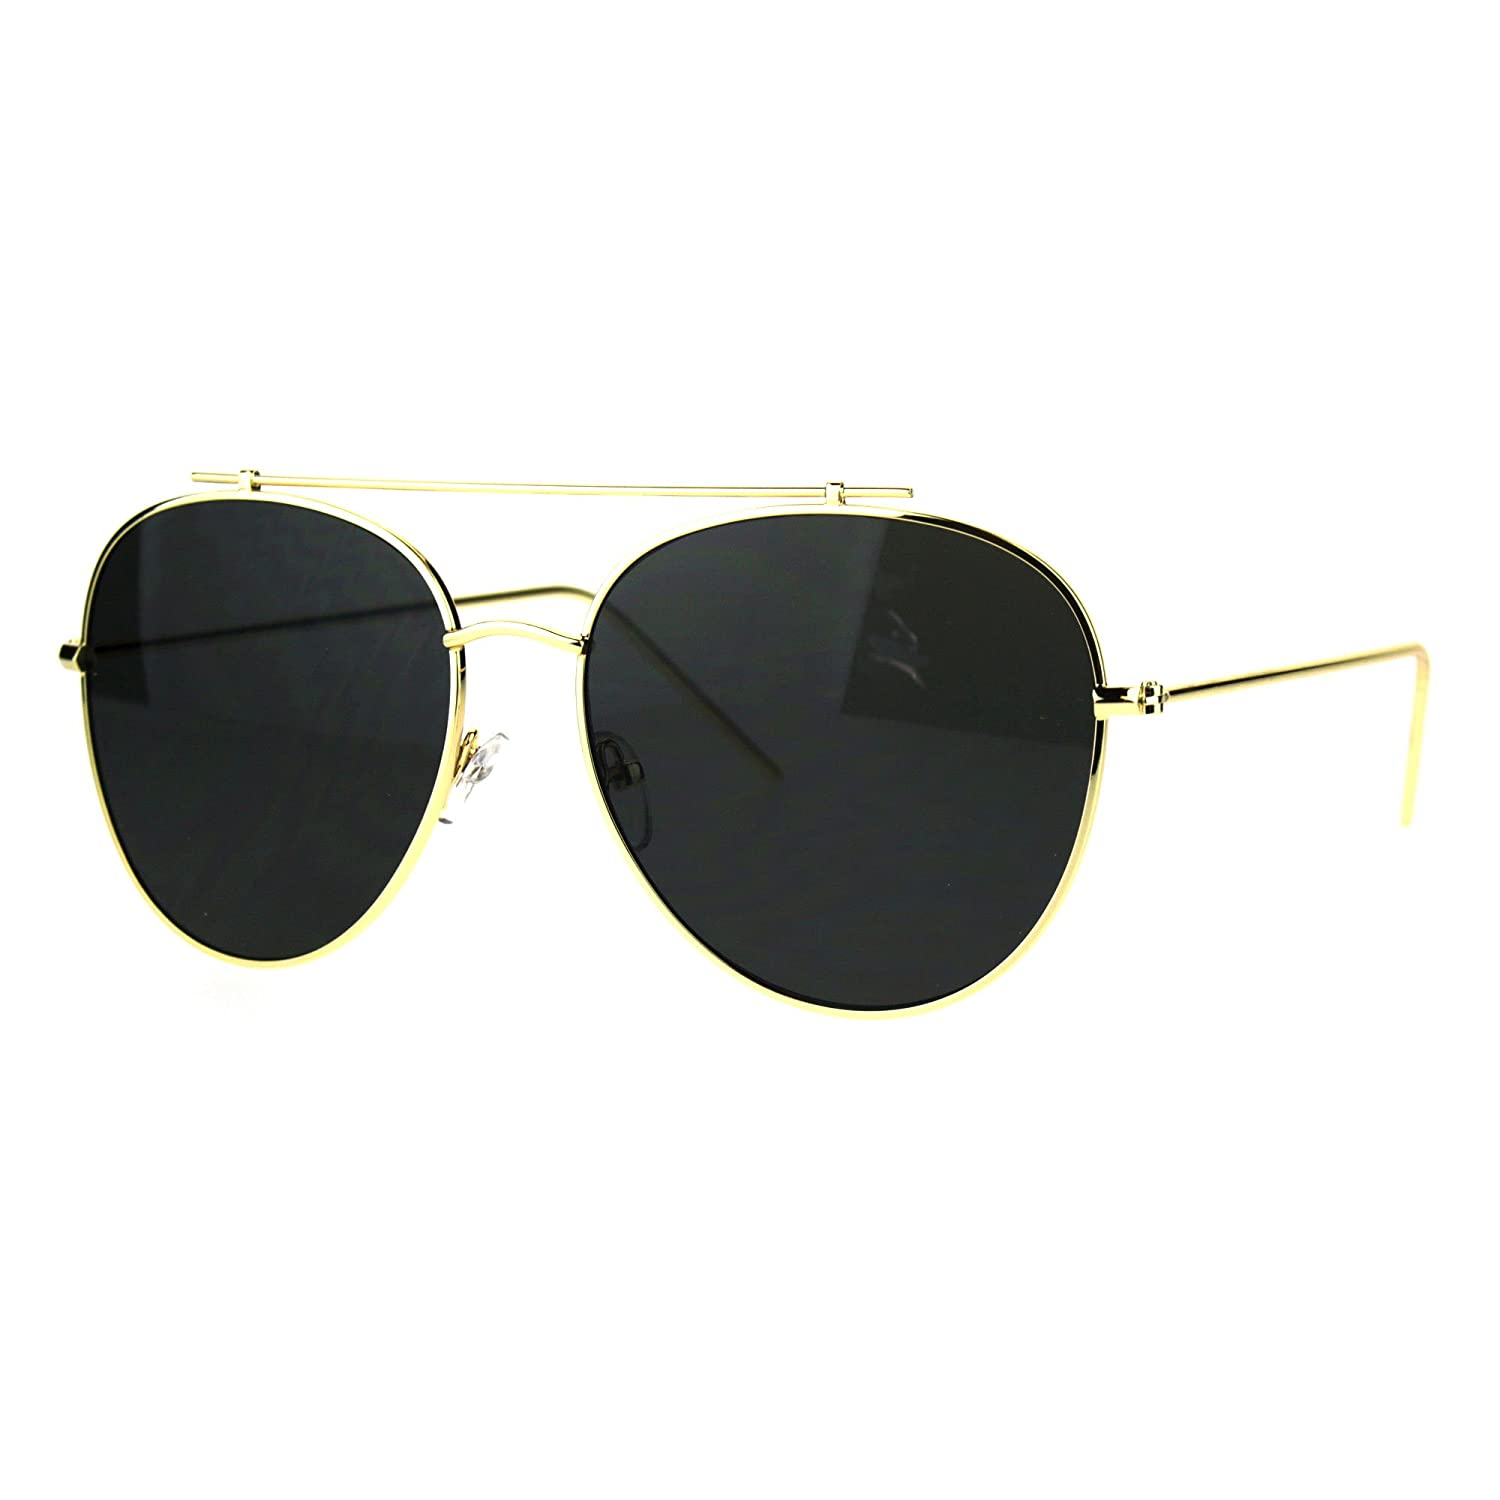 40dc9998837 Amazon.com  Flat Top Bar Aviator Sunglasses Oversized Fashion Aviators  UV400 Gold